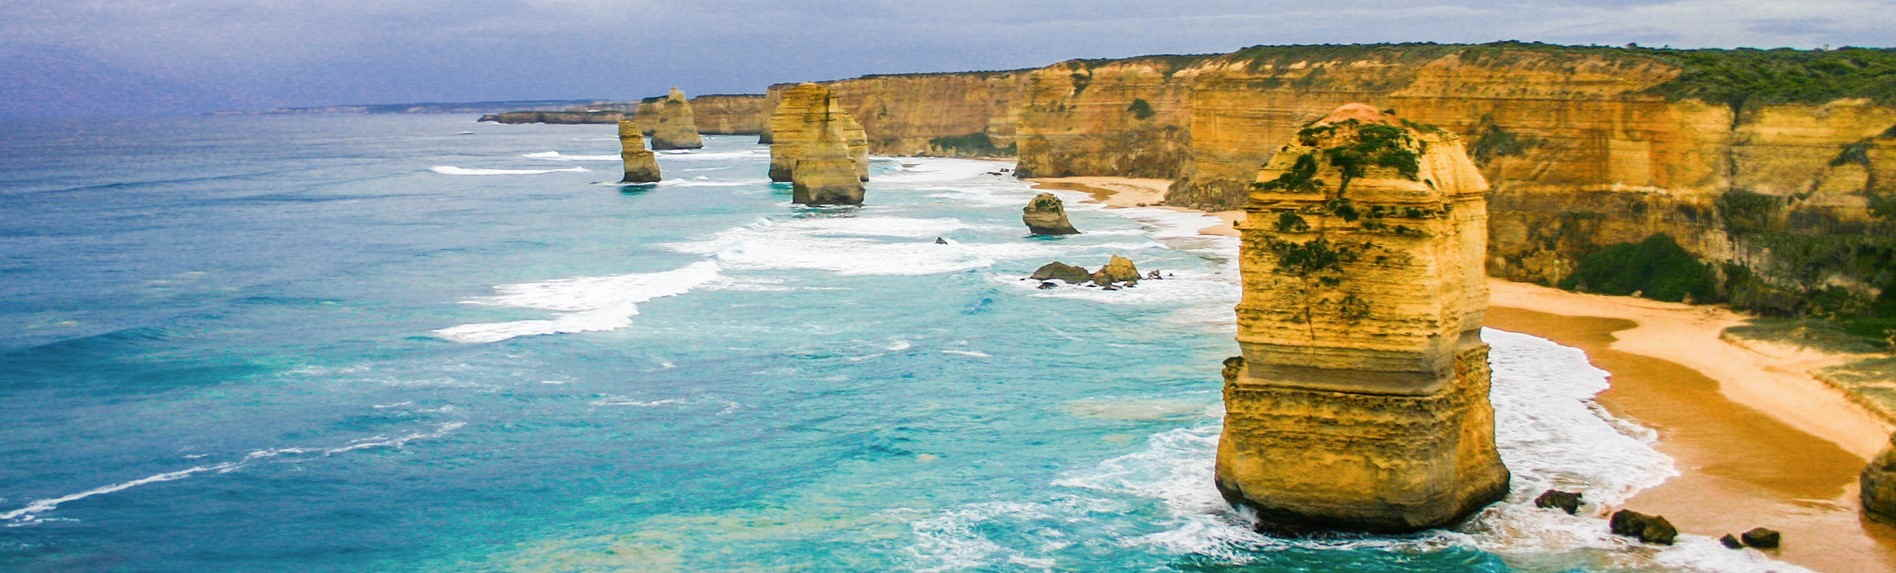 8 Books to Transport You to Australia When You Can't Travel